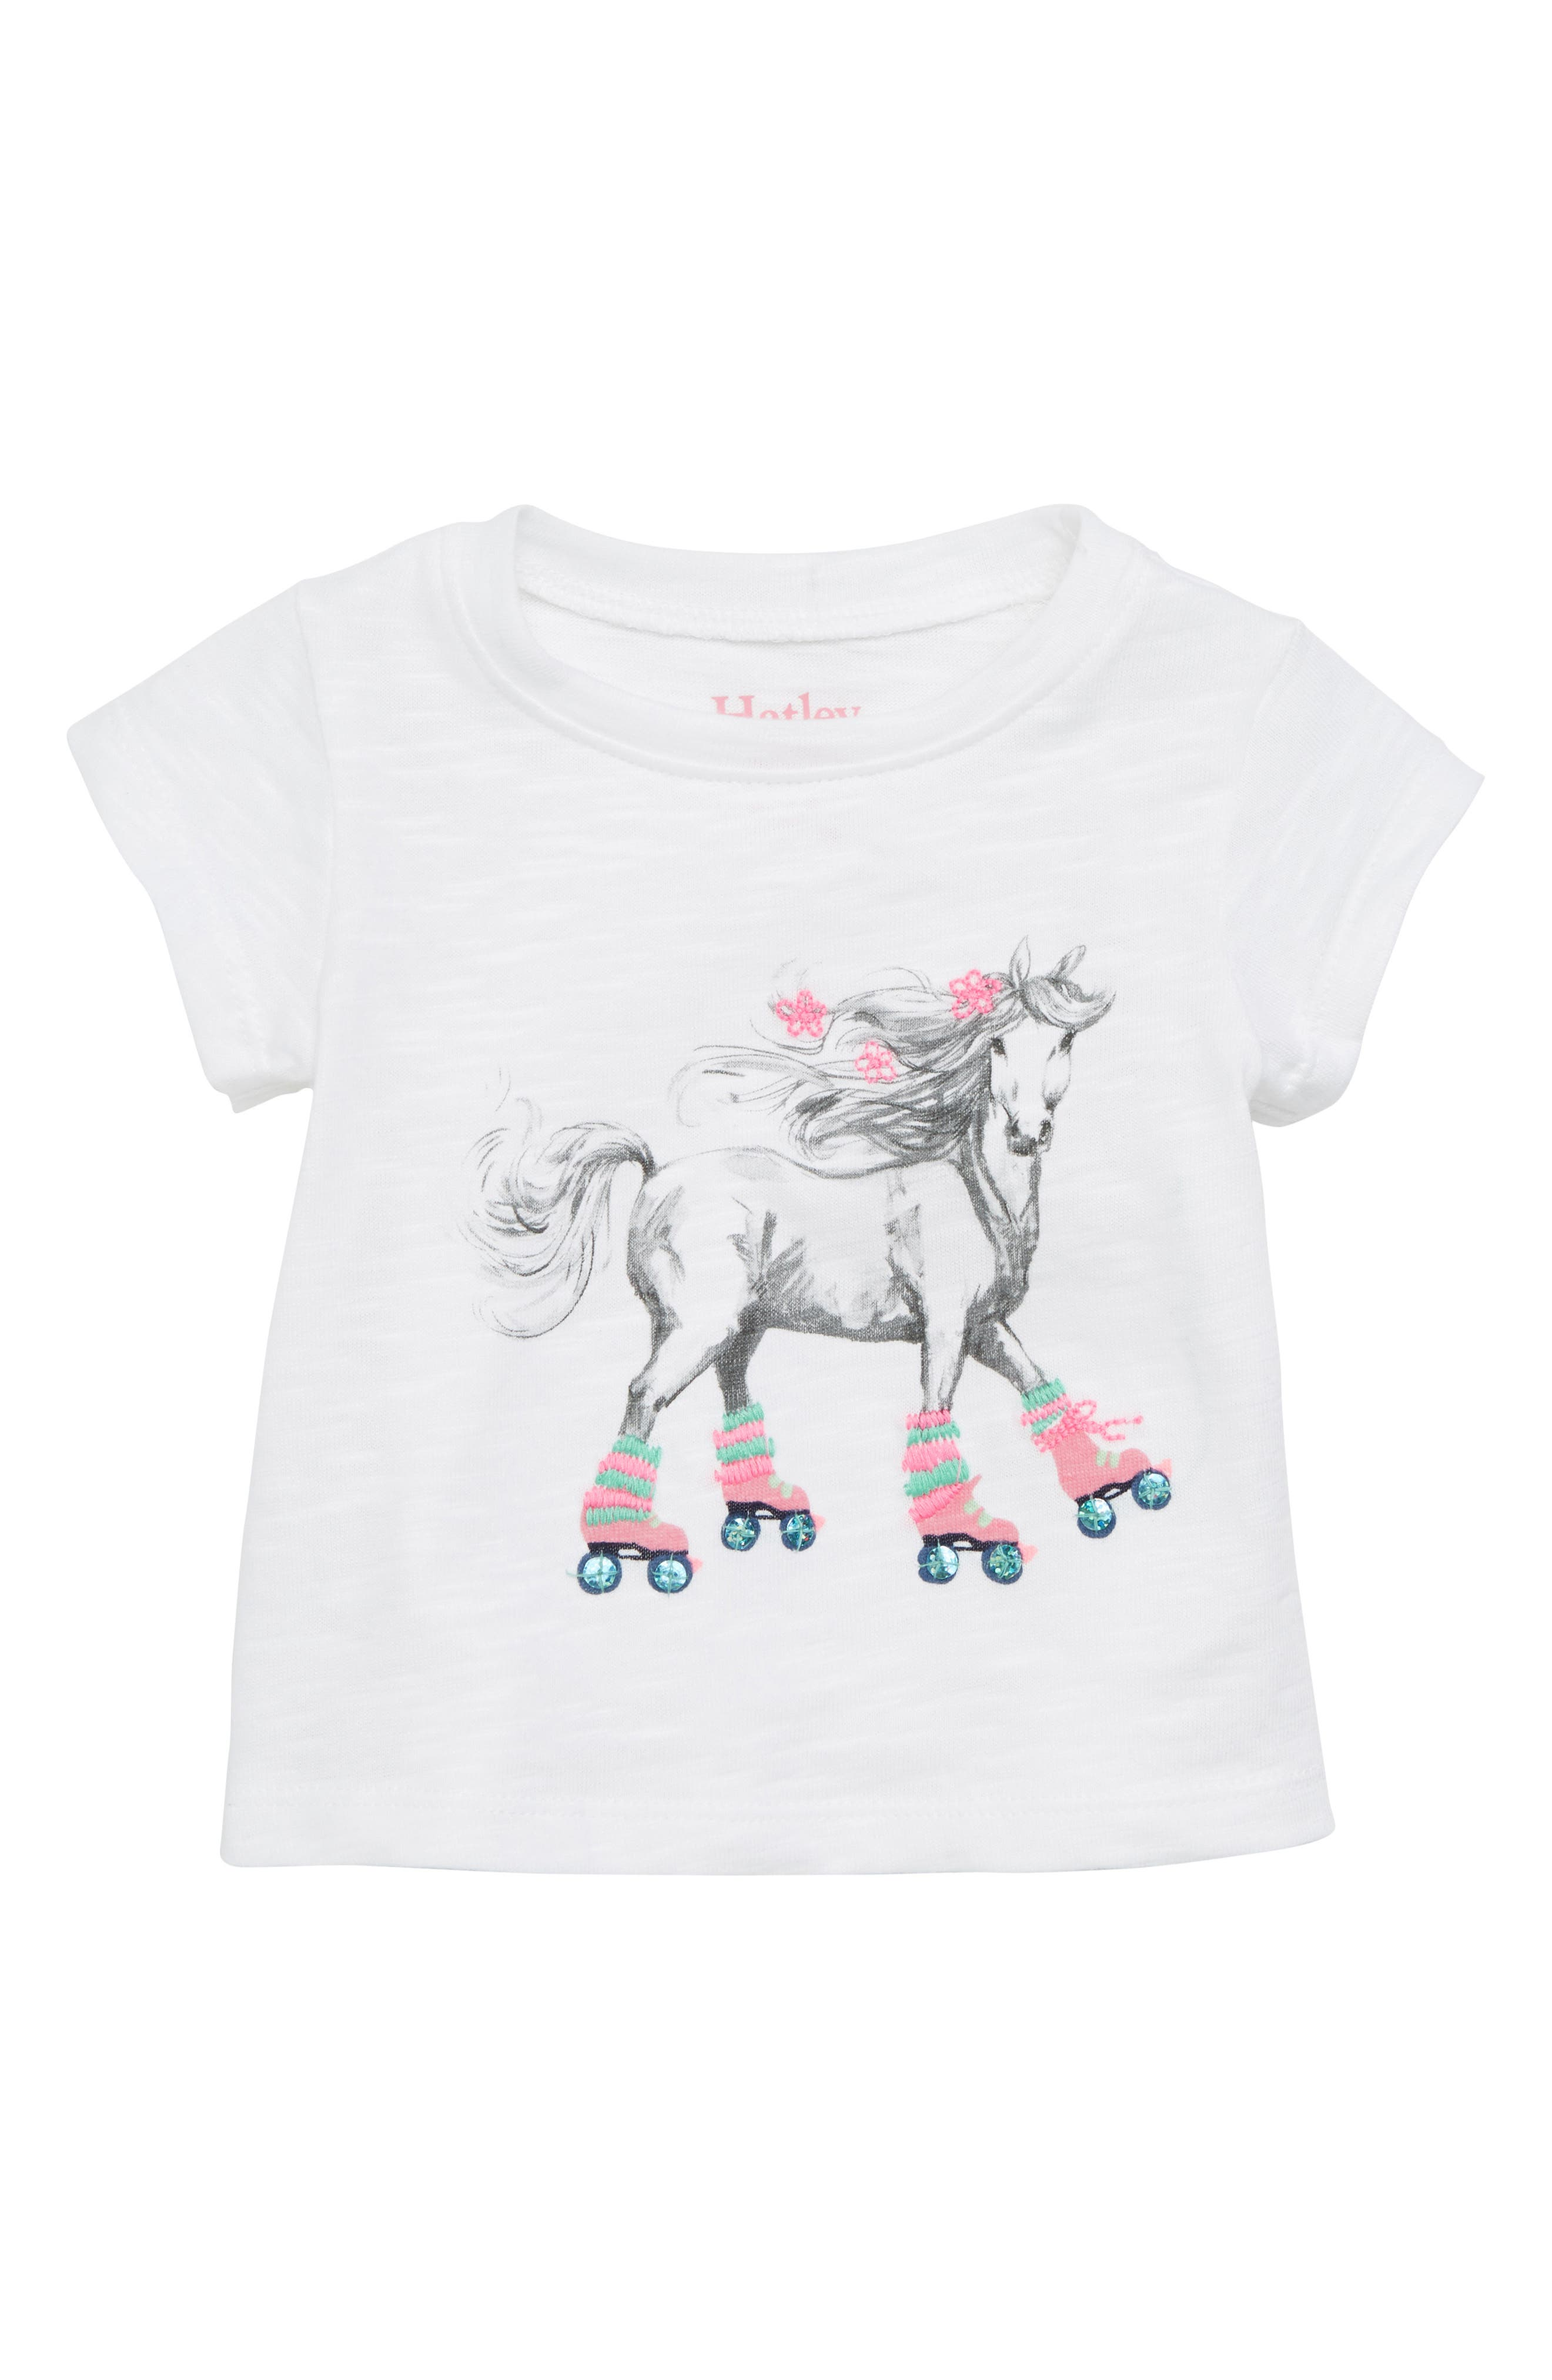 Roller Skating Horse Graphic Tee,                         Main,                         color, 100